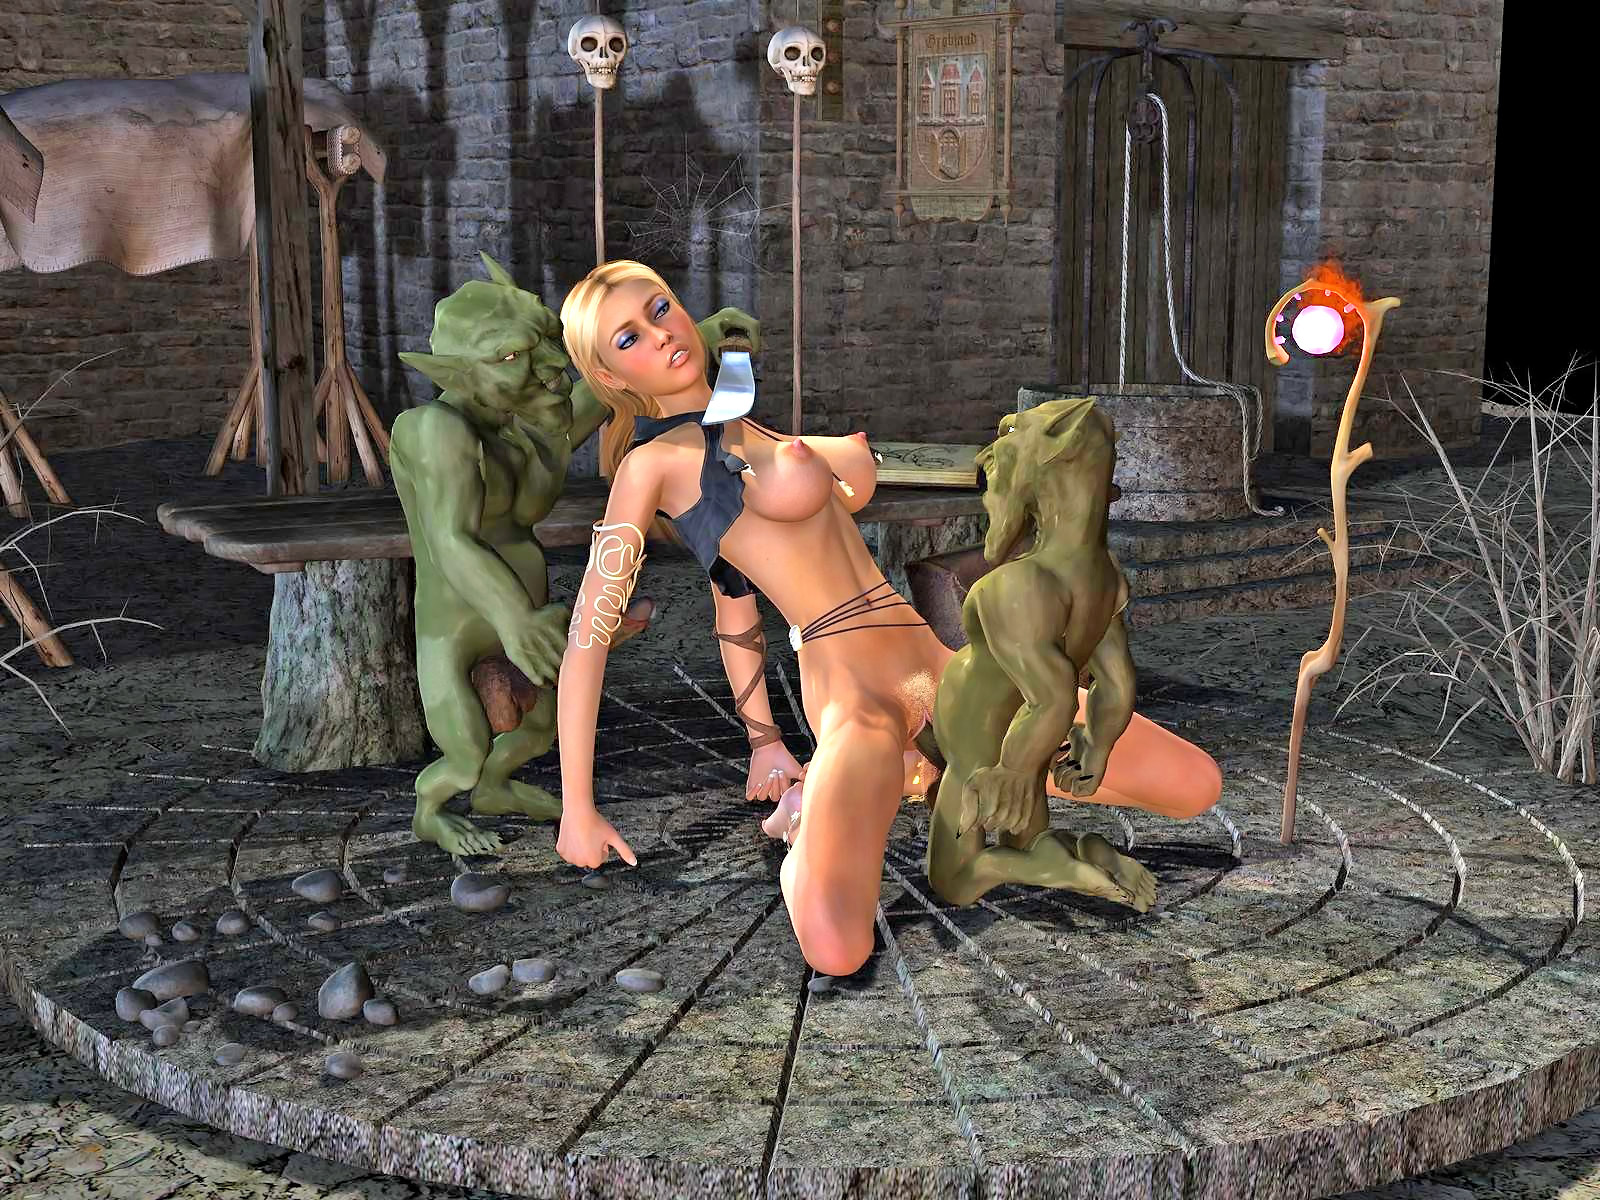 3d porno fantasy world adult image